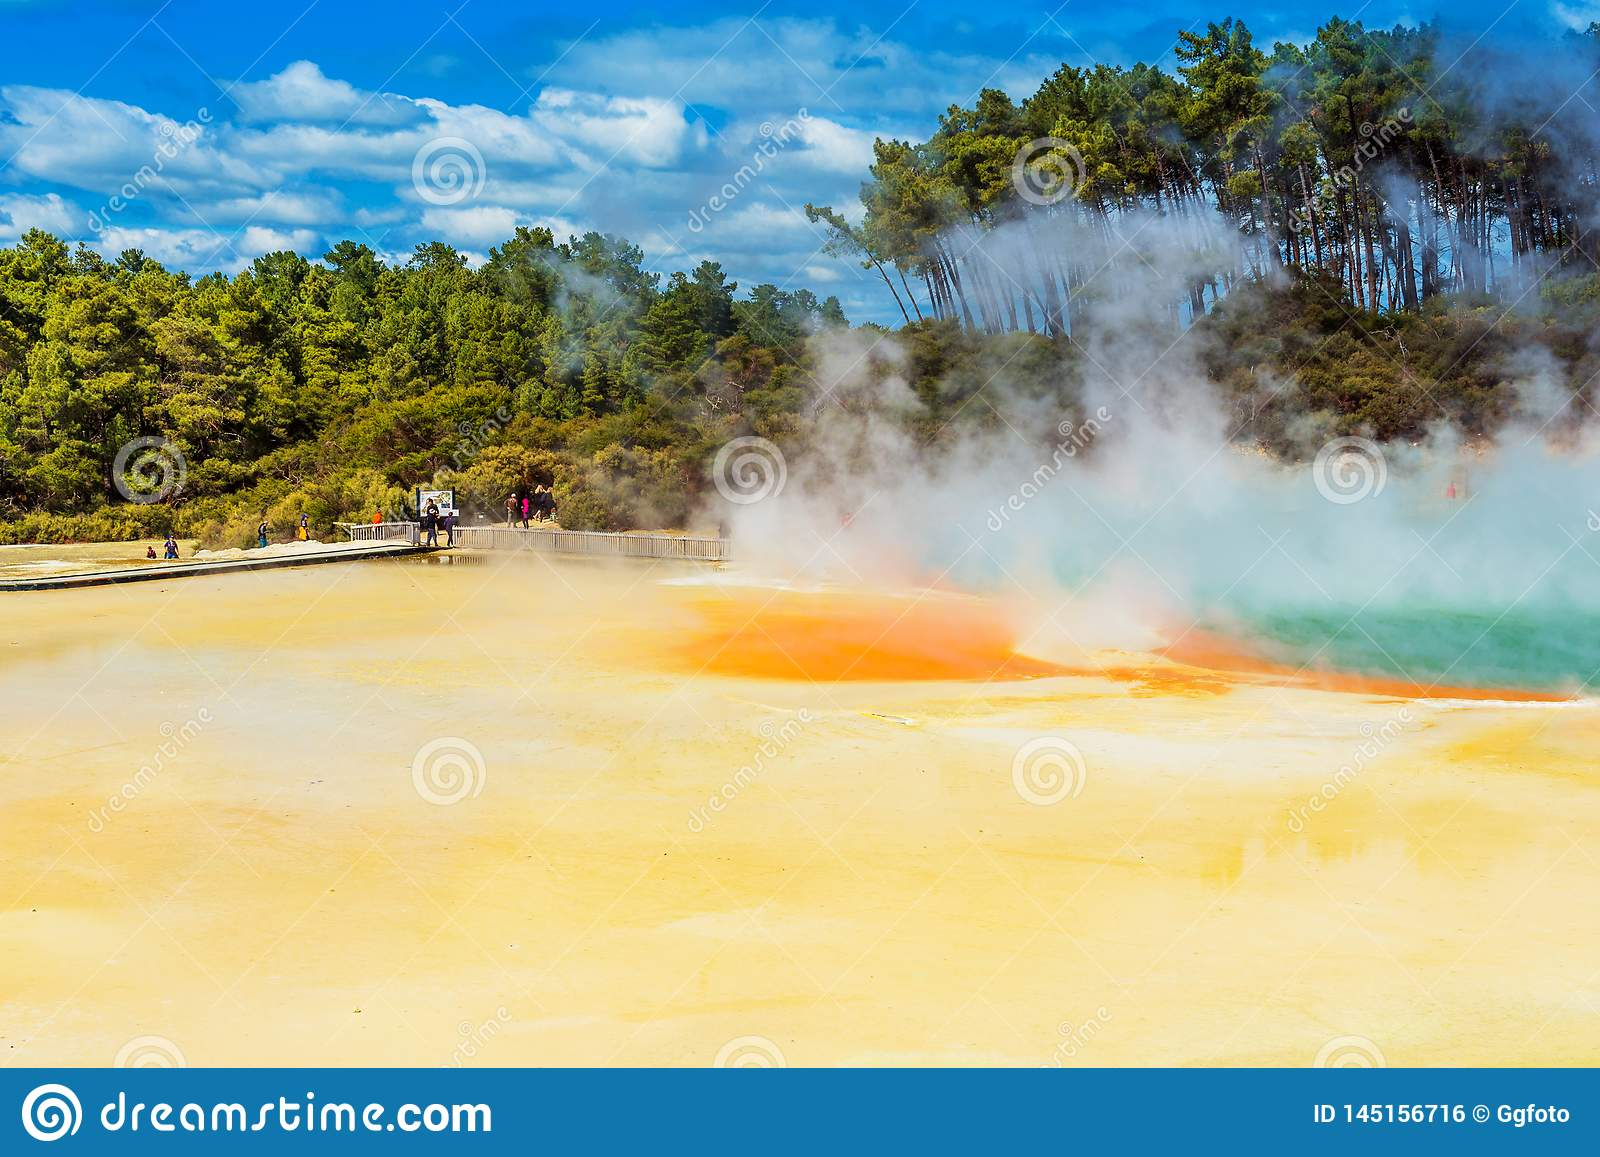 Geothermal pools in Wai-O-Tapu park, Rotorua, New Zealand. Copy space for text